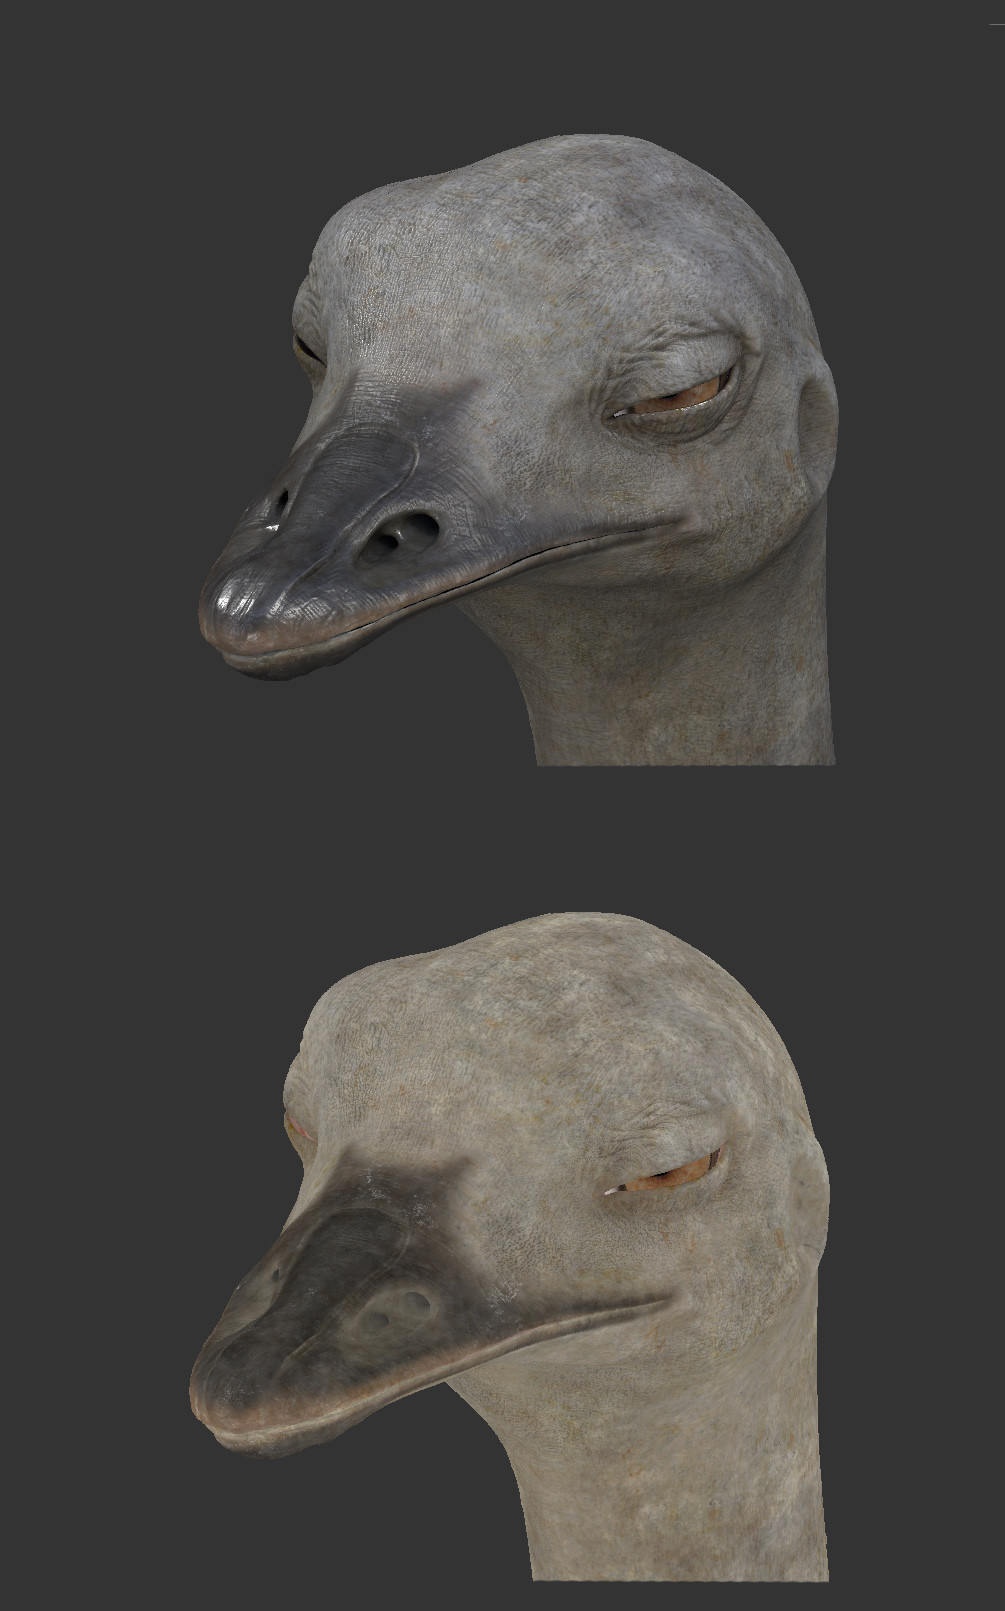 Ostrich texturing was made in Mari